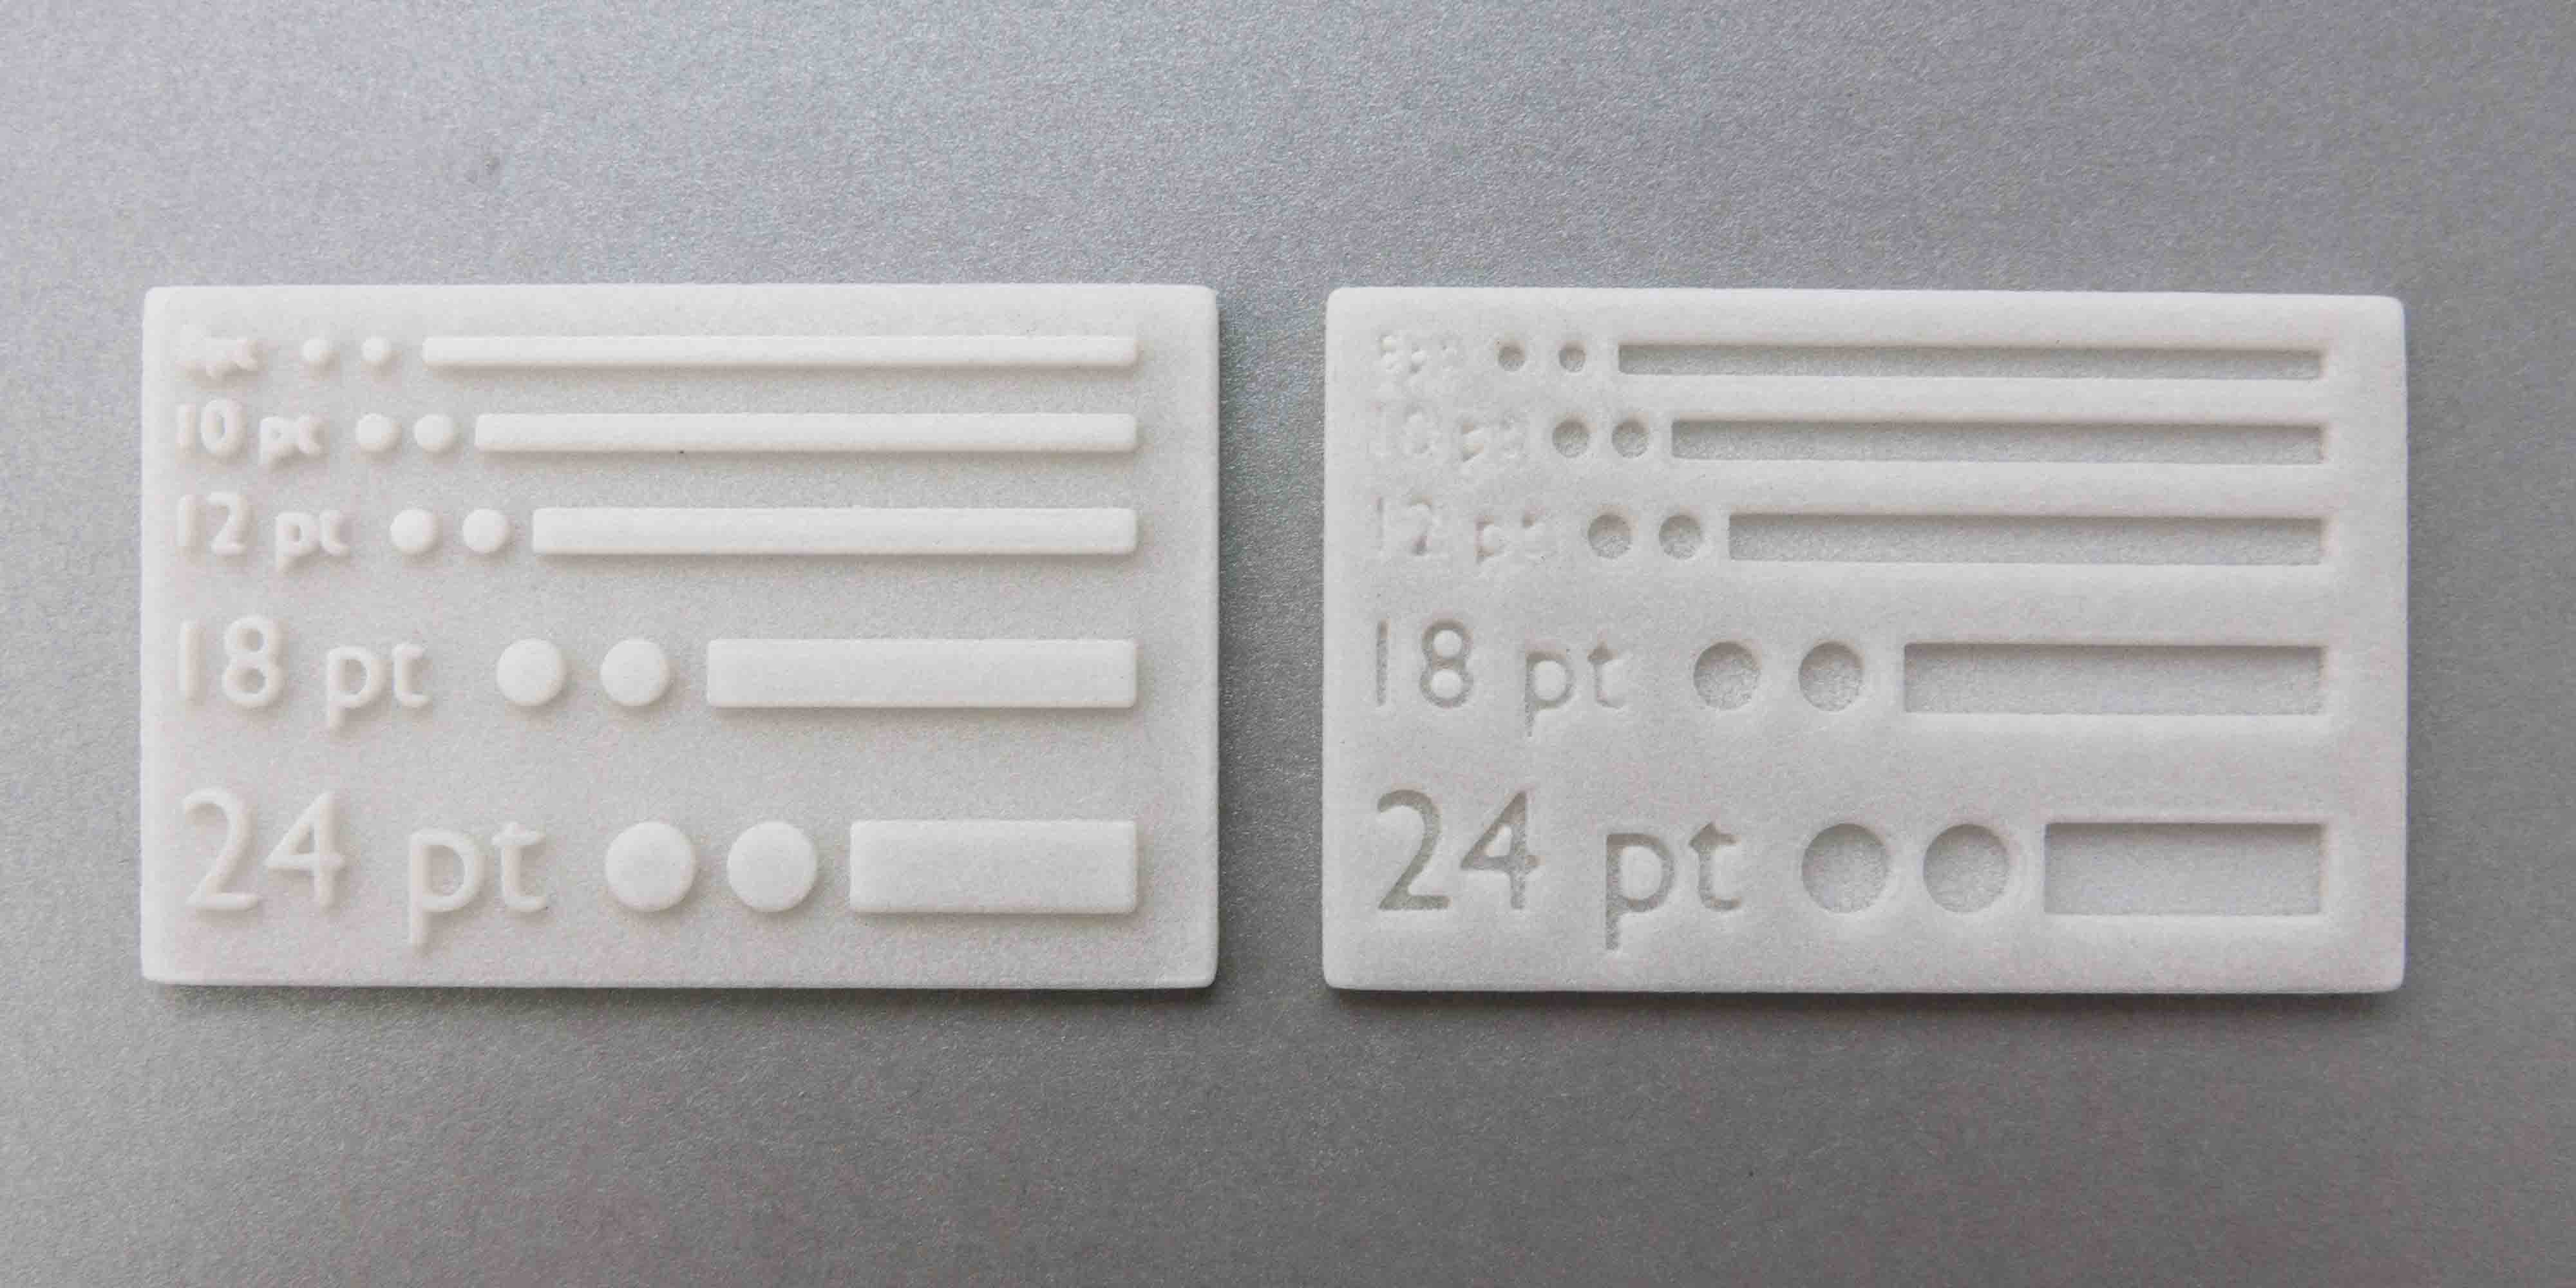 Difference of embossing between two black 3d print